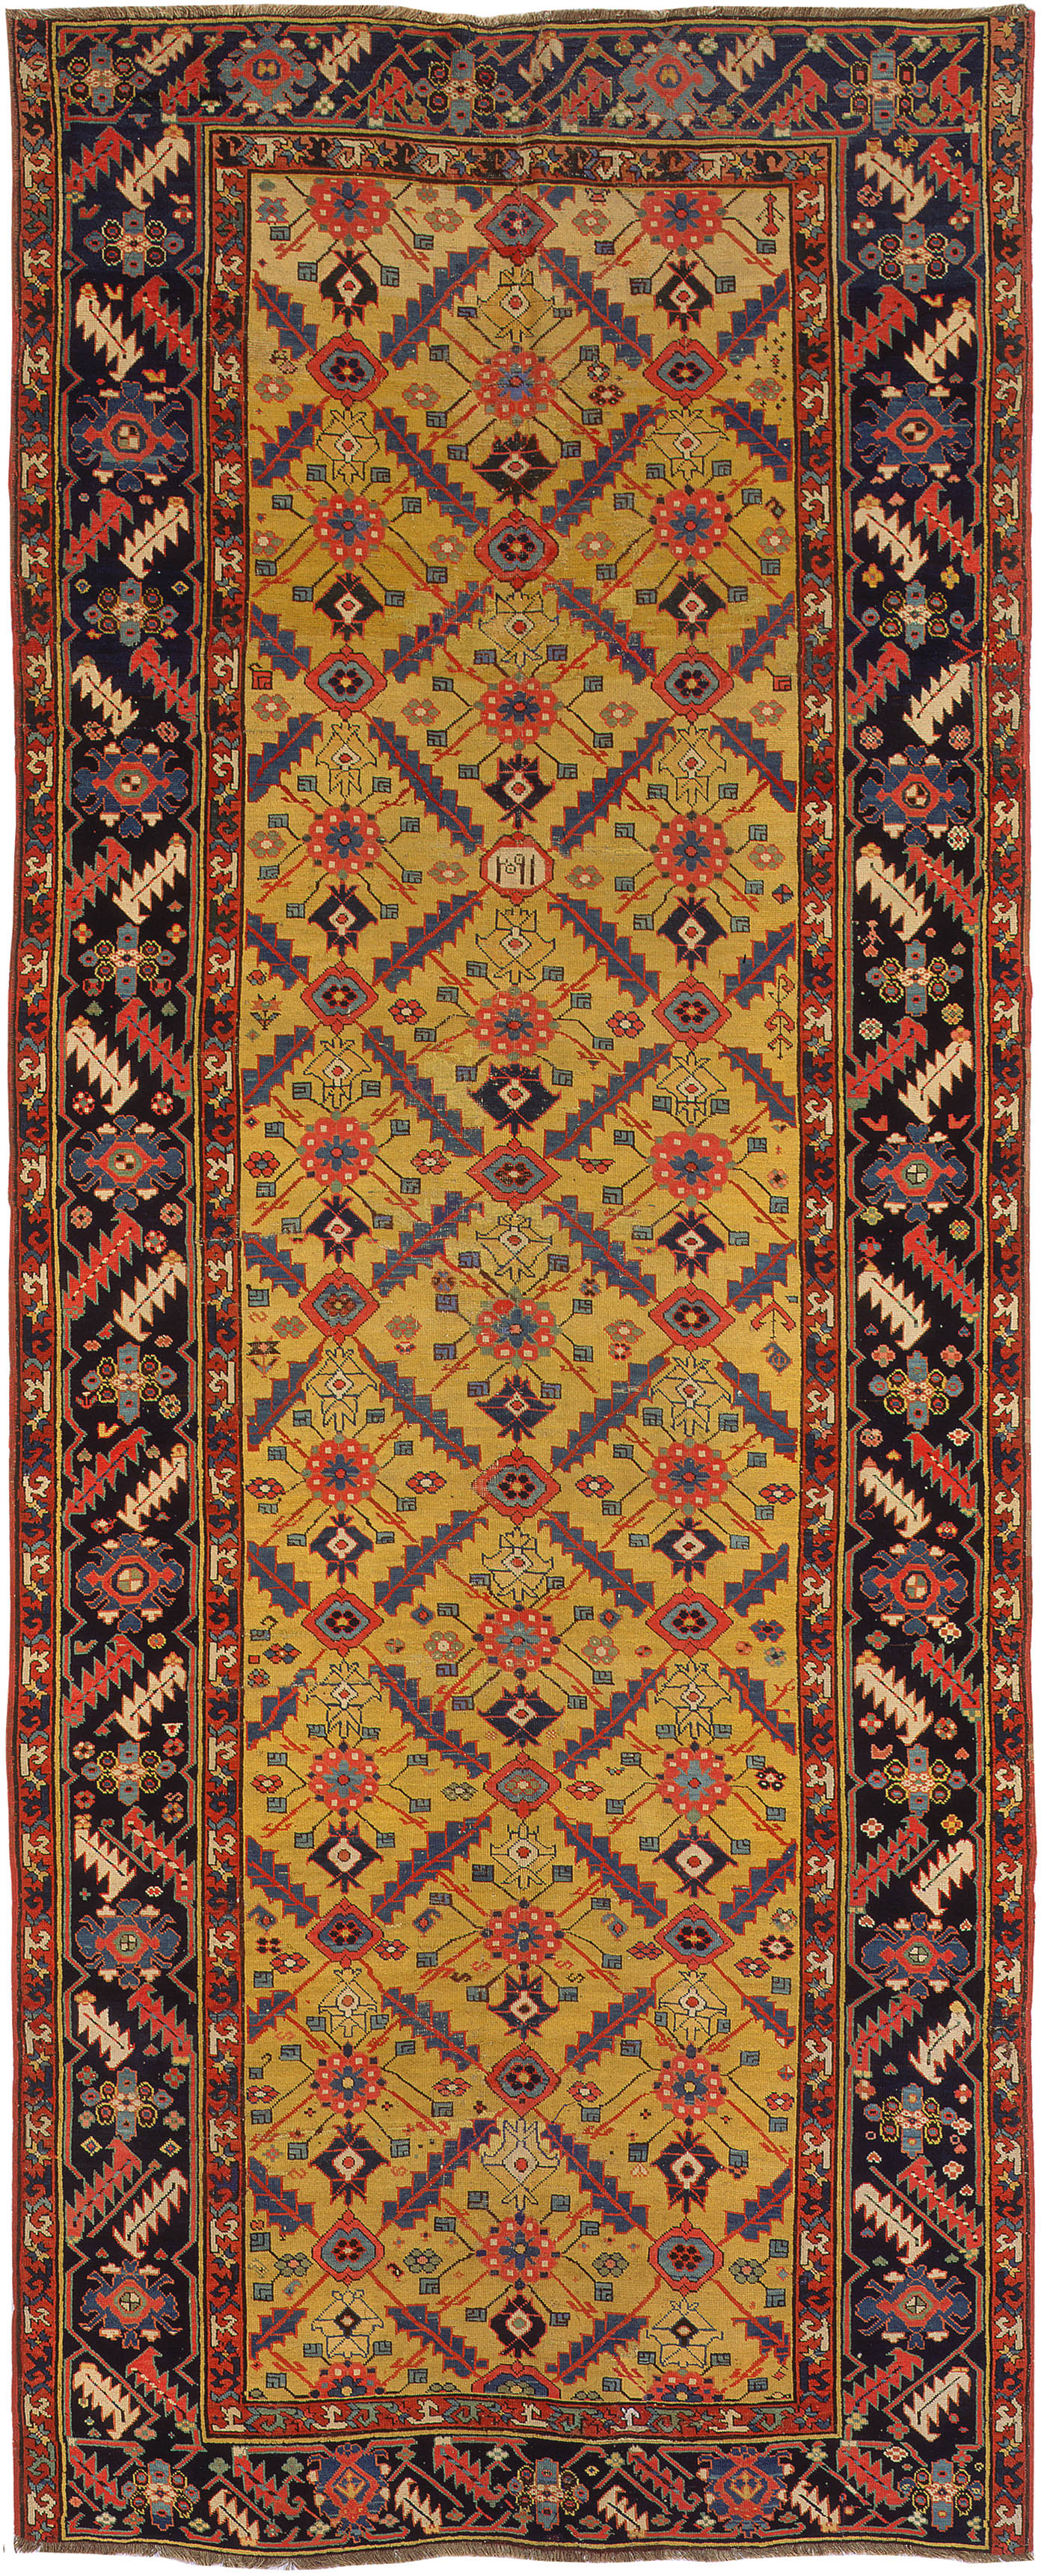 antique rugs antique caucasian azerbaijan rug by nazmiyal ZRVZAKX